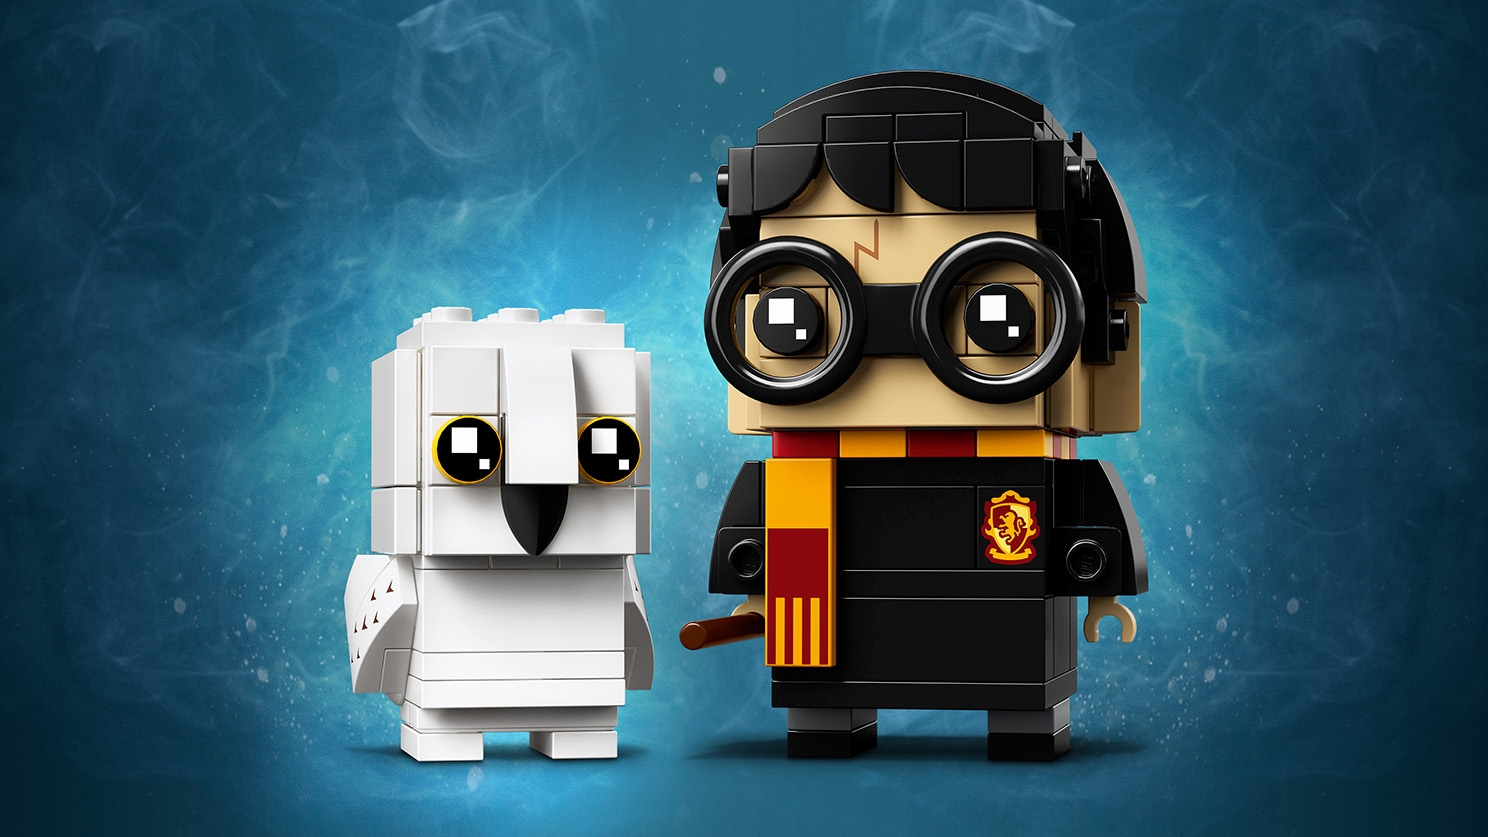 LEGO Brickheadz - 41915 Harry Potter & Hedwig - Build Harry Potter wearing Gryffindor scarf and his owl Hedwig from the movie Harry Potter and The Sorcerer's Stone.